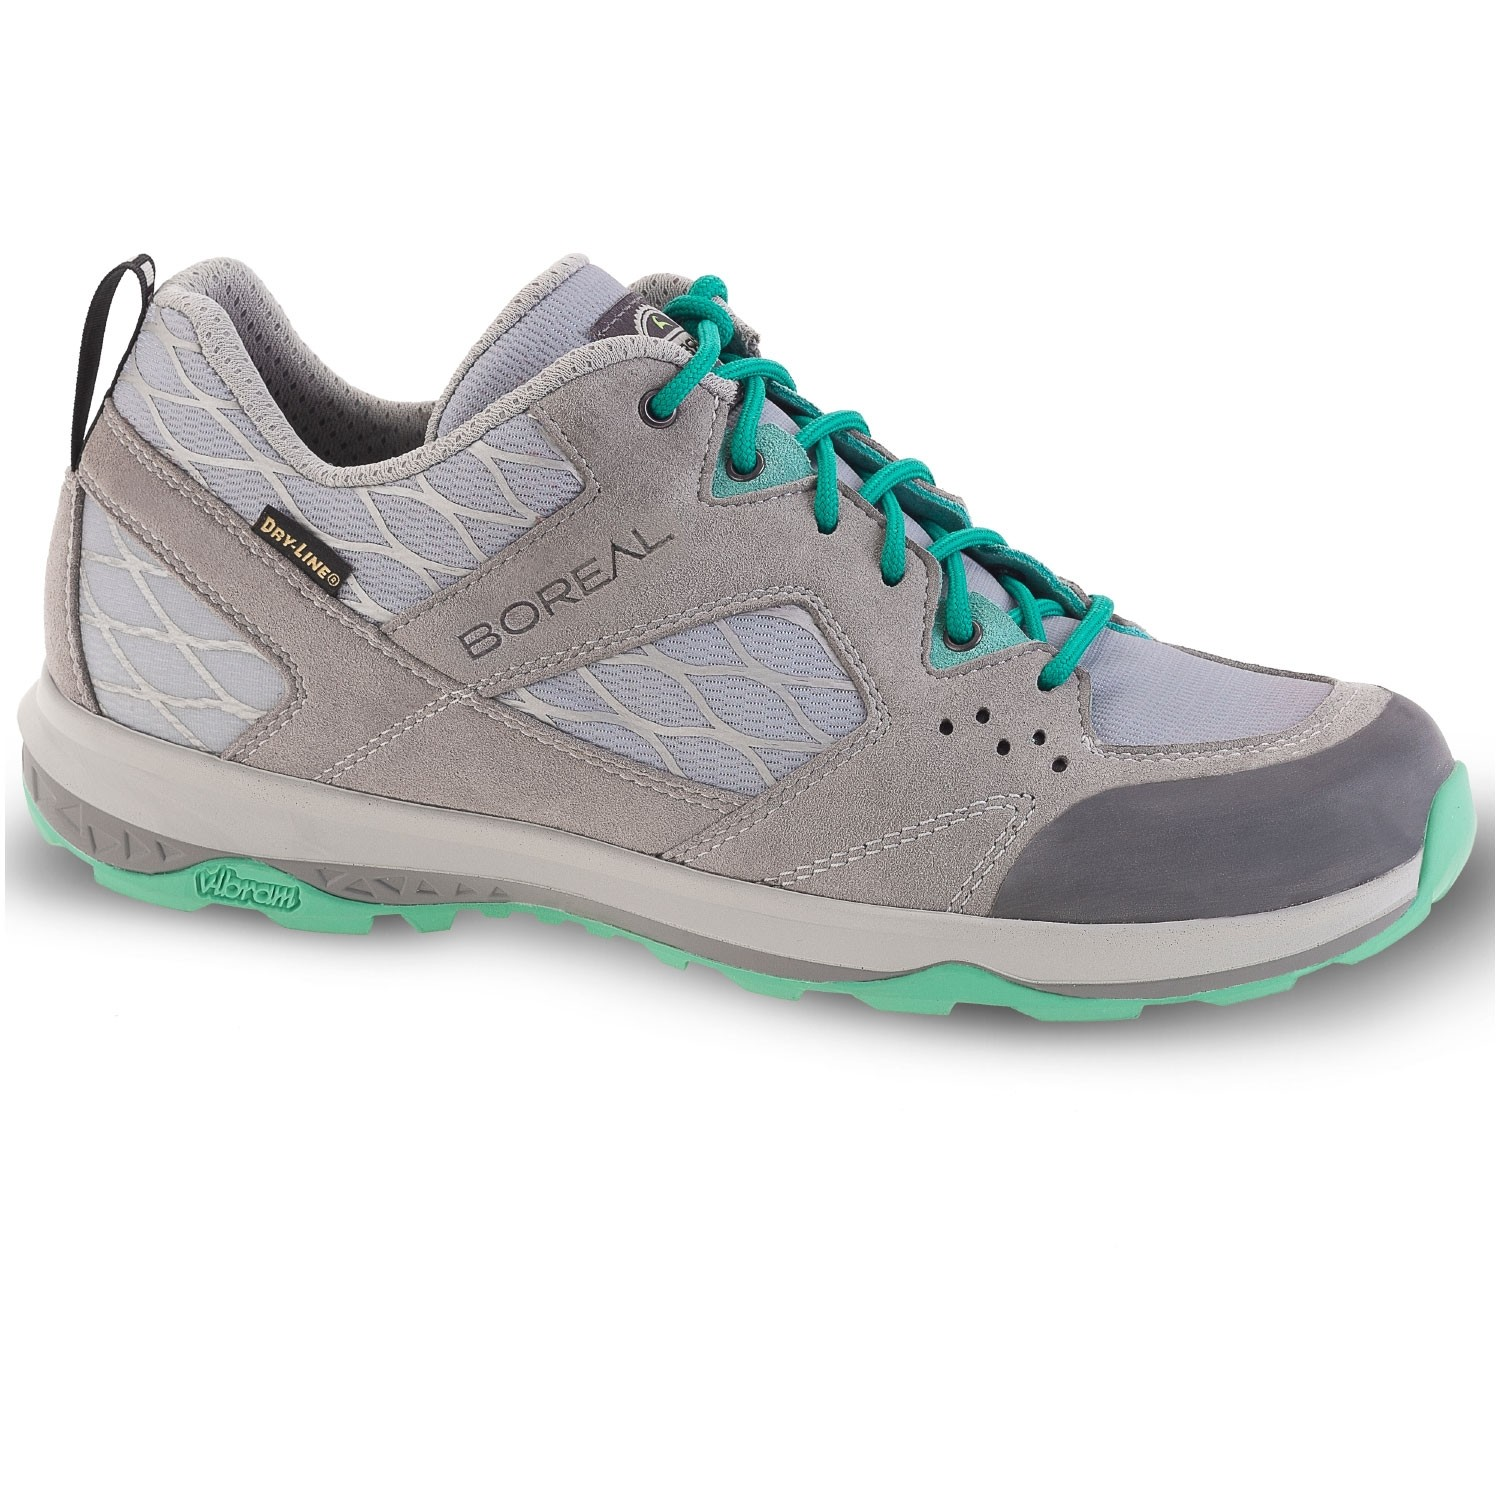 Boreal Amazona Low Women's Approach Shoe